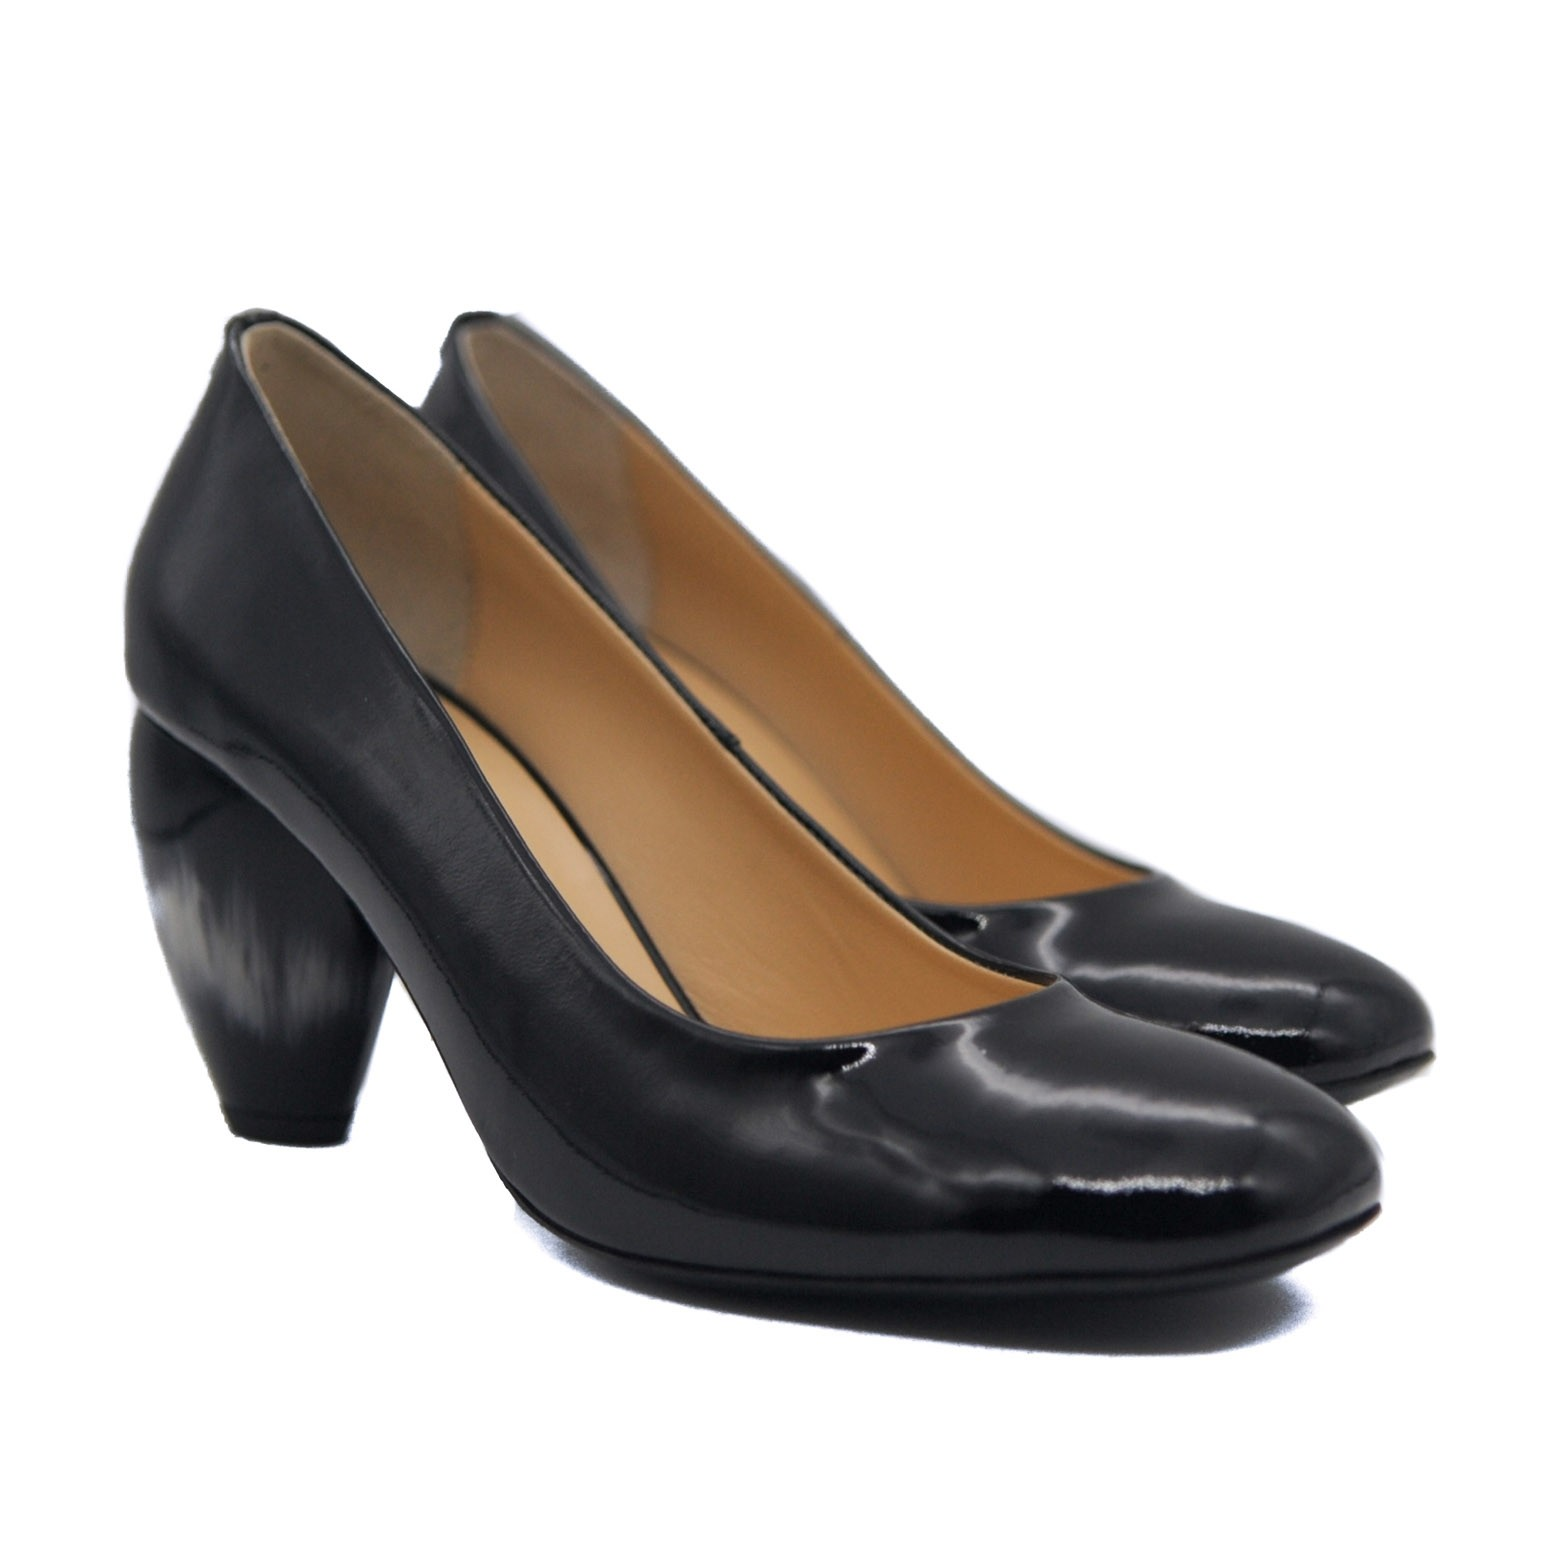 Goody2Shoes Ladies Court Shoes in Black Patent Leather with Tulip Heel